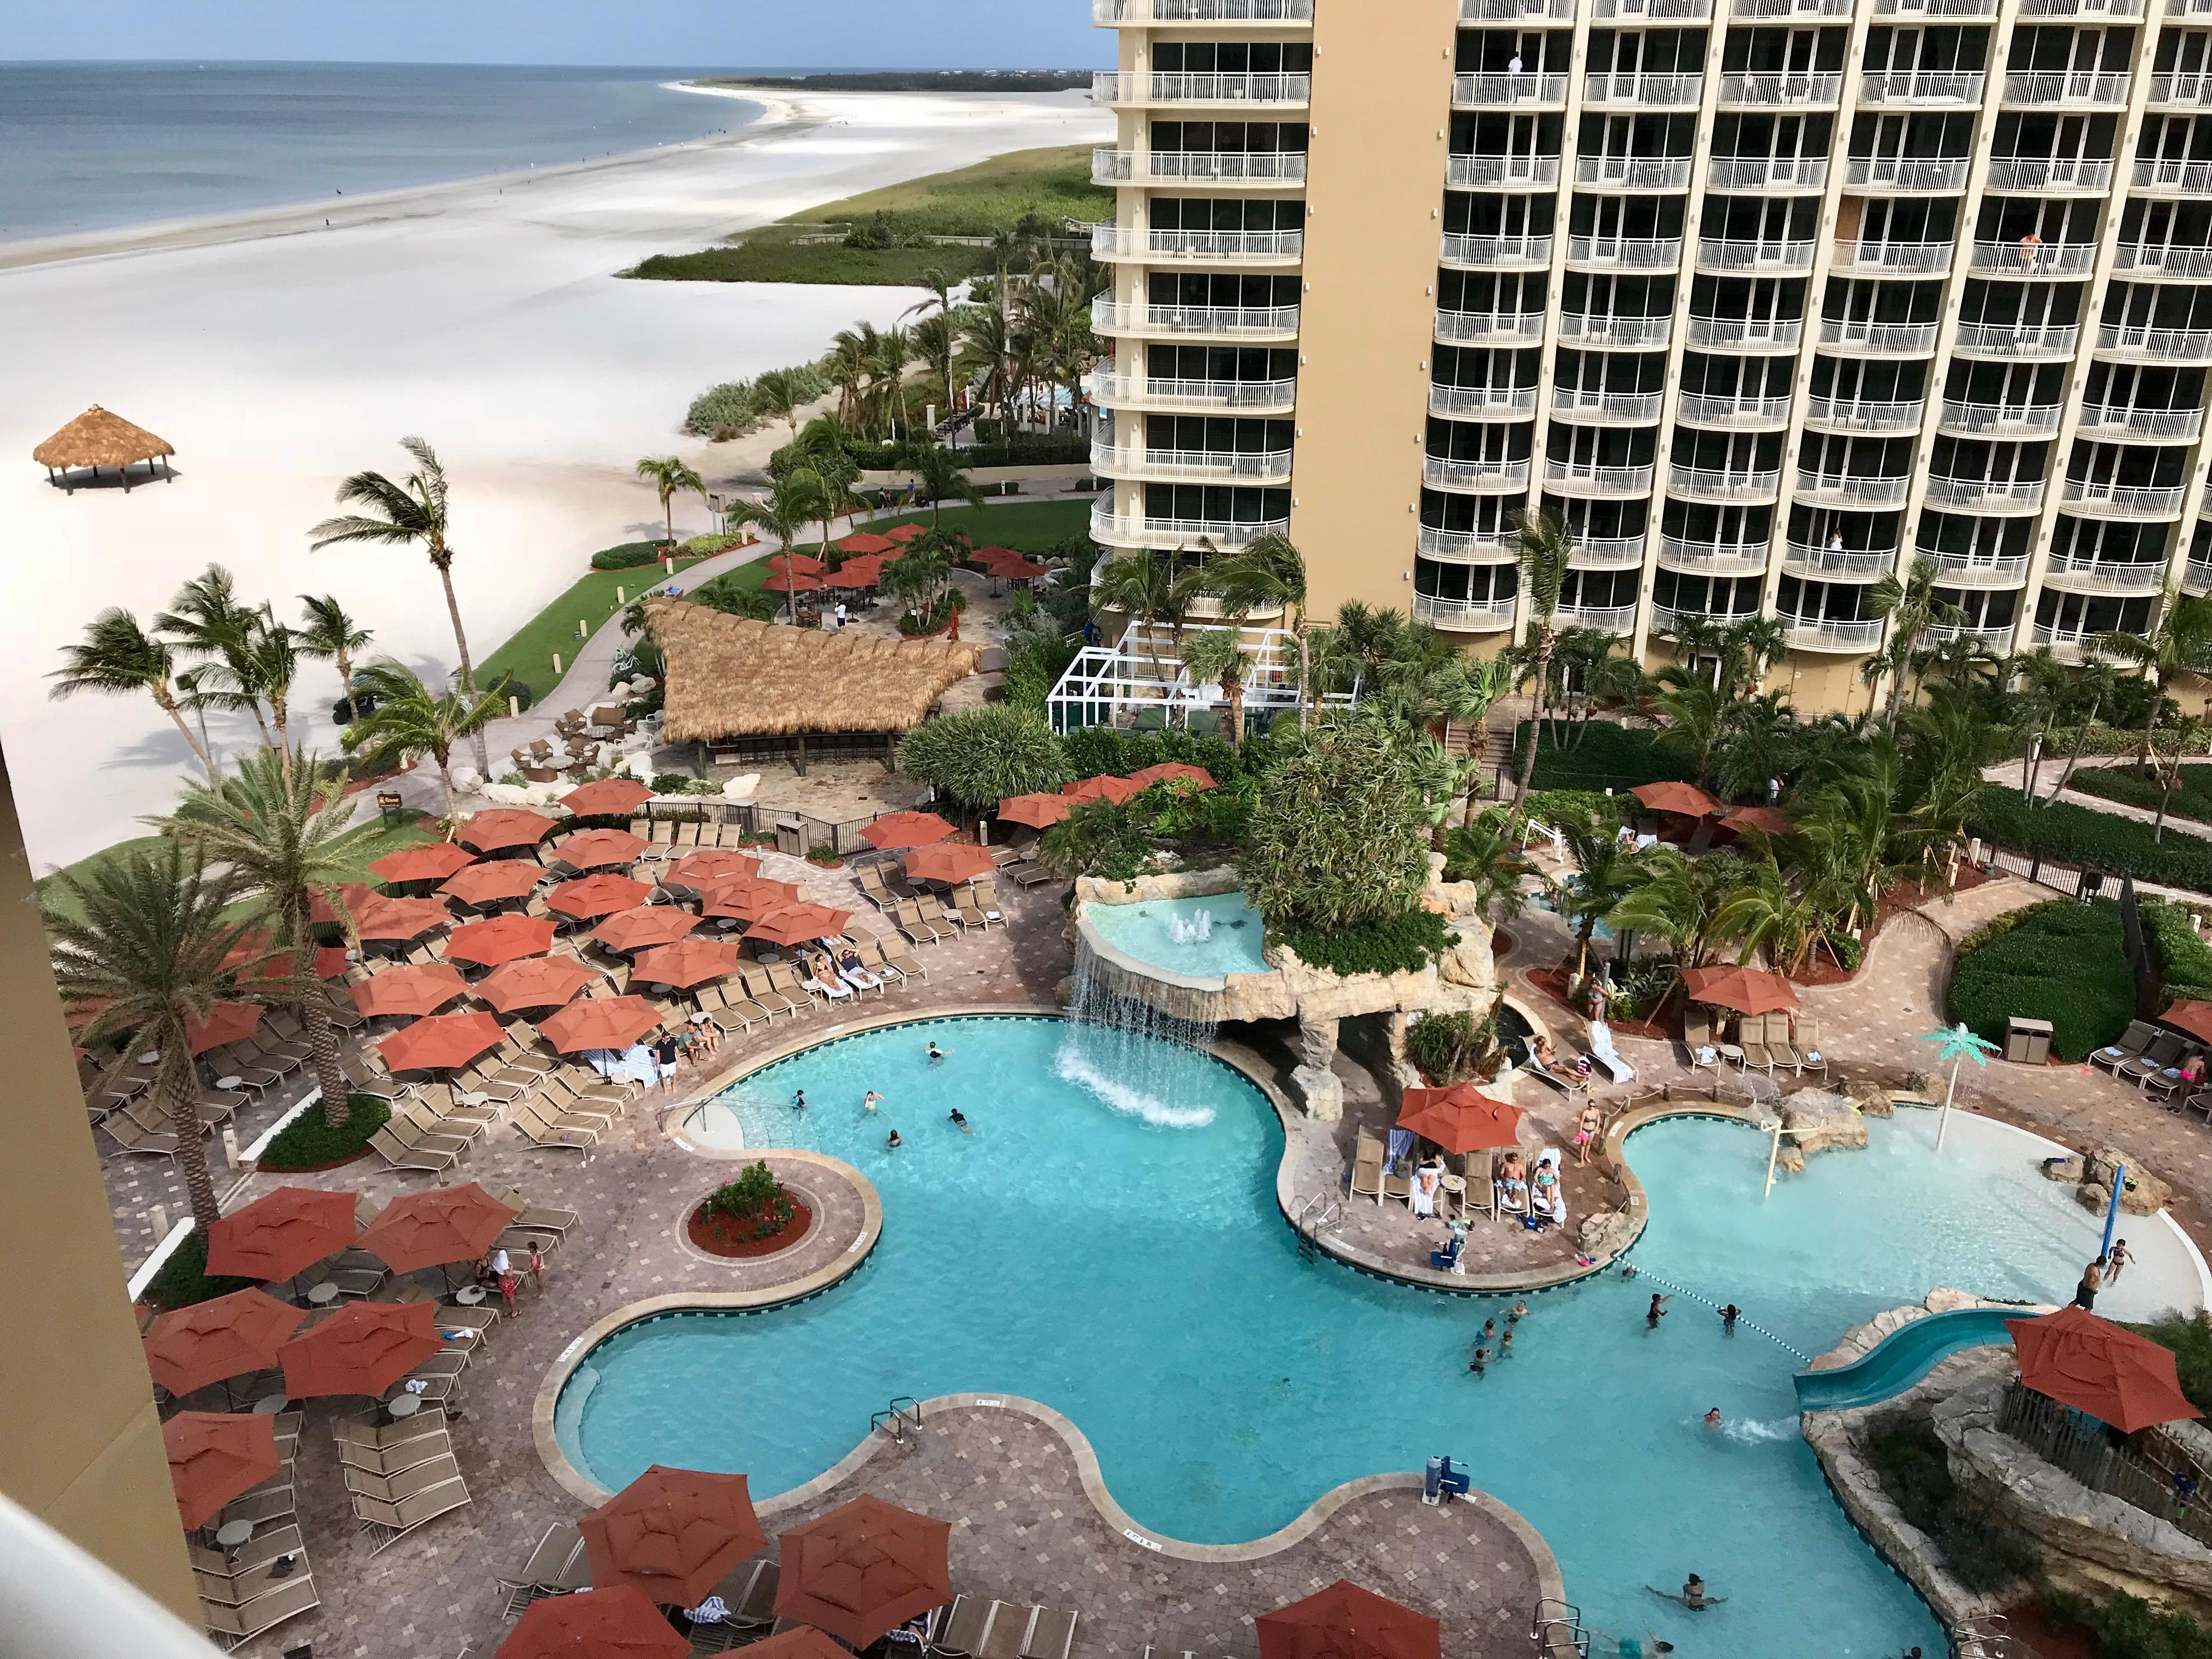 Marriott Is Nothing Short Of The Best 2 Pools Several Restaurants Clean Updated Rooms Friendly And Helpful Staff Breath Taking Ocean Views